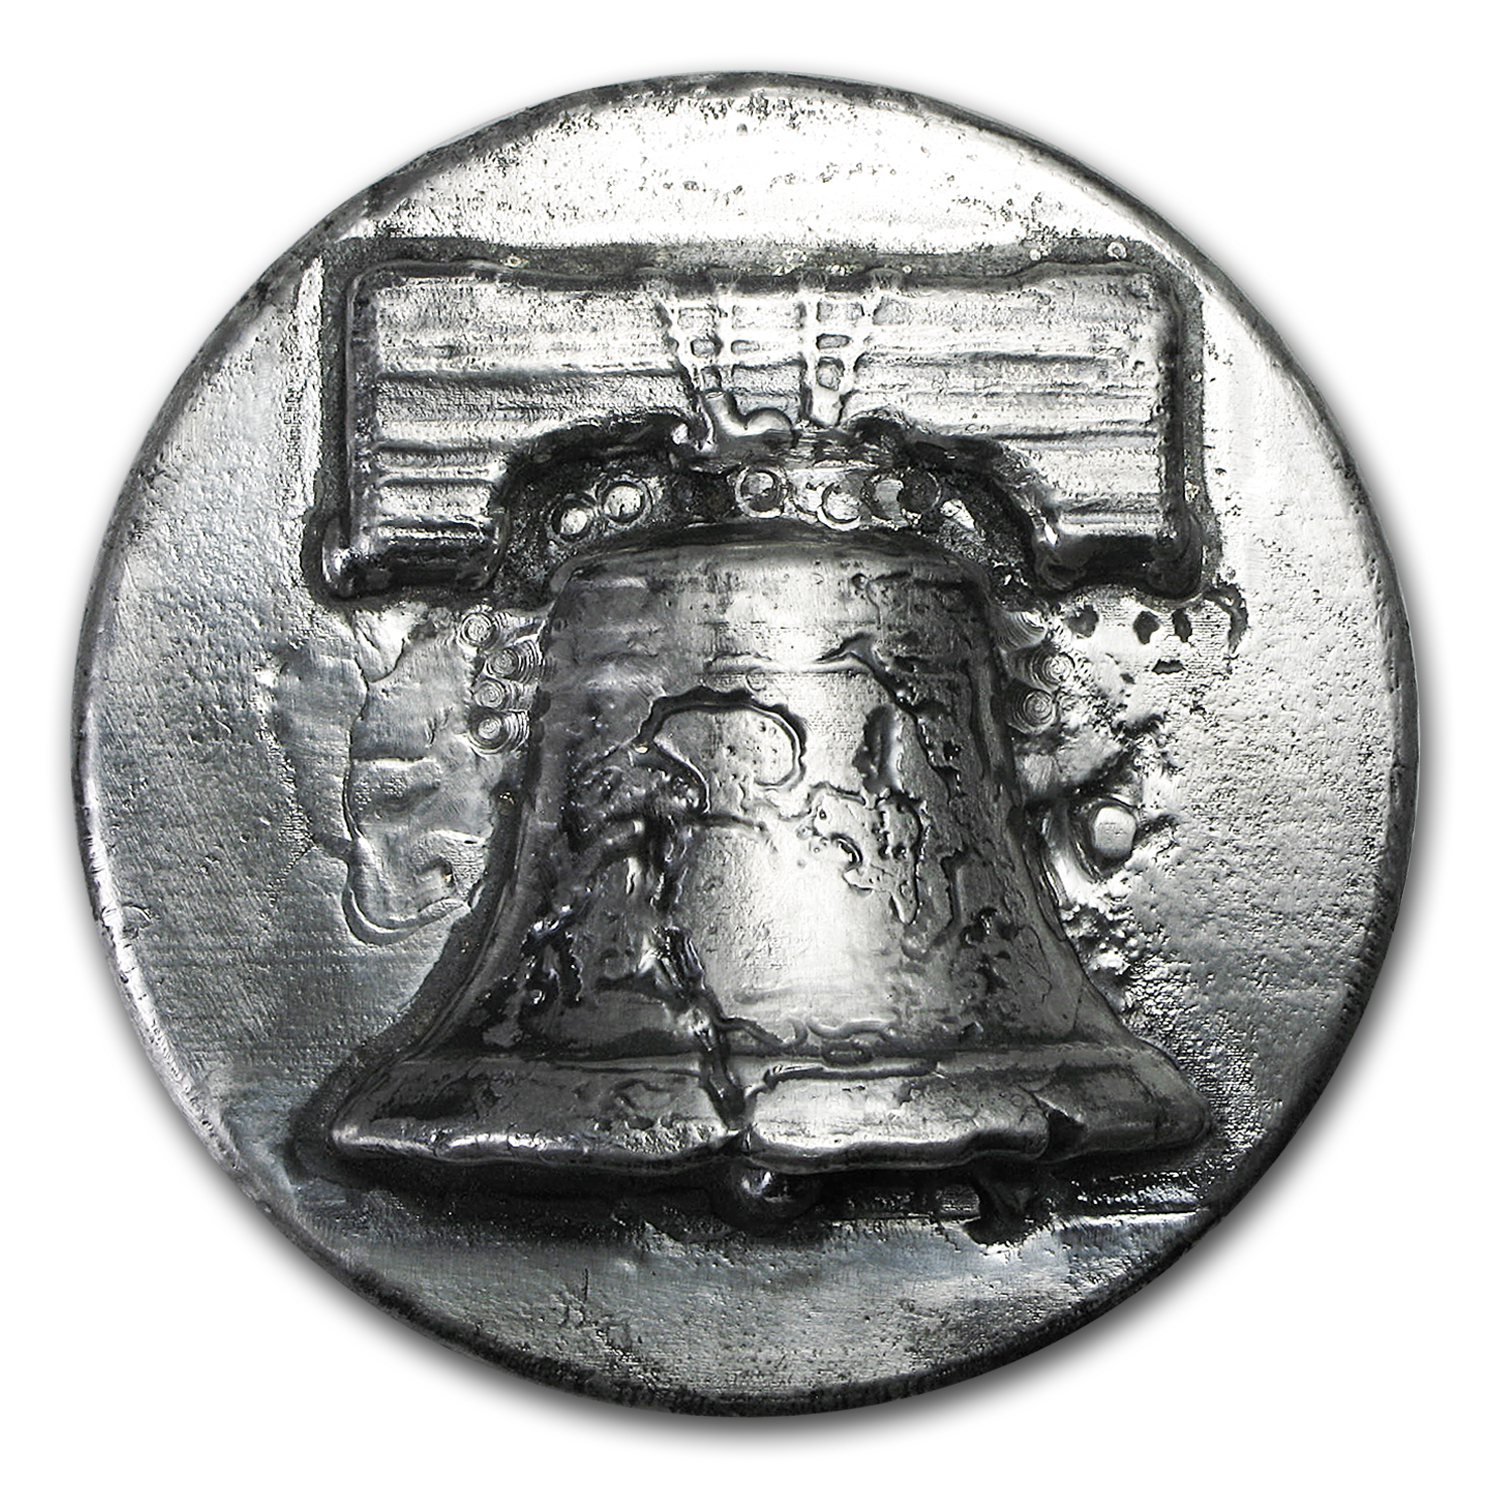 1 kilo Silver Round - Liberty Bell (Ultra High Relief)